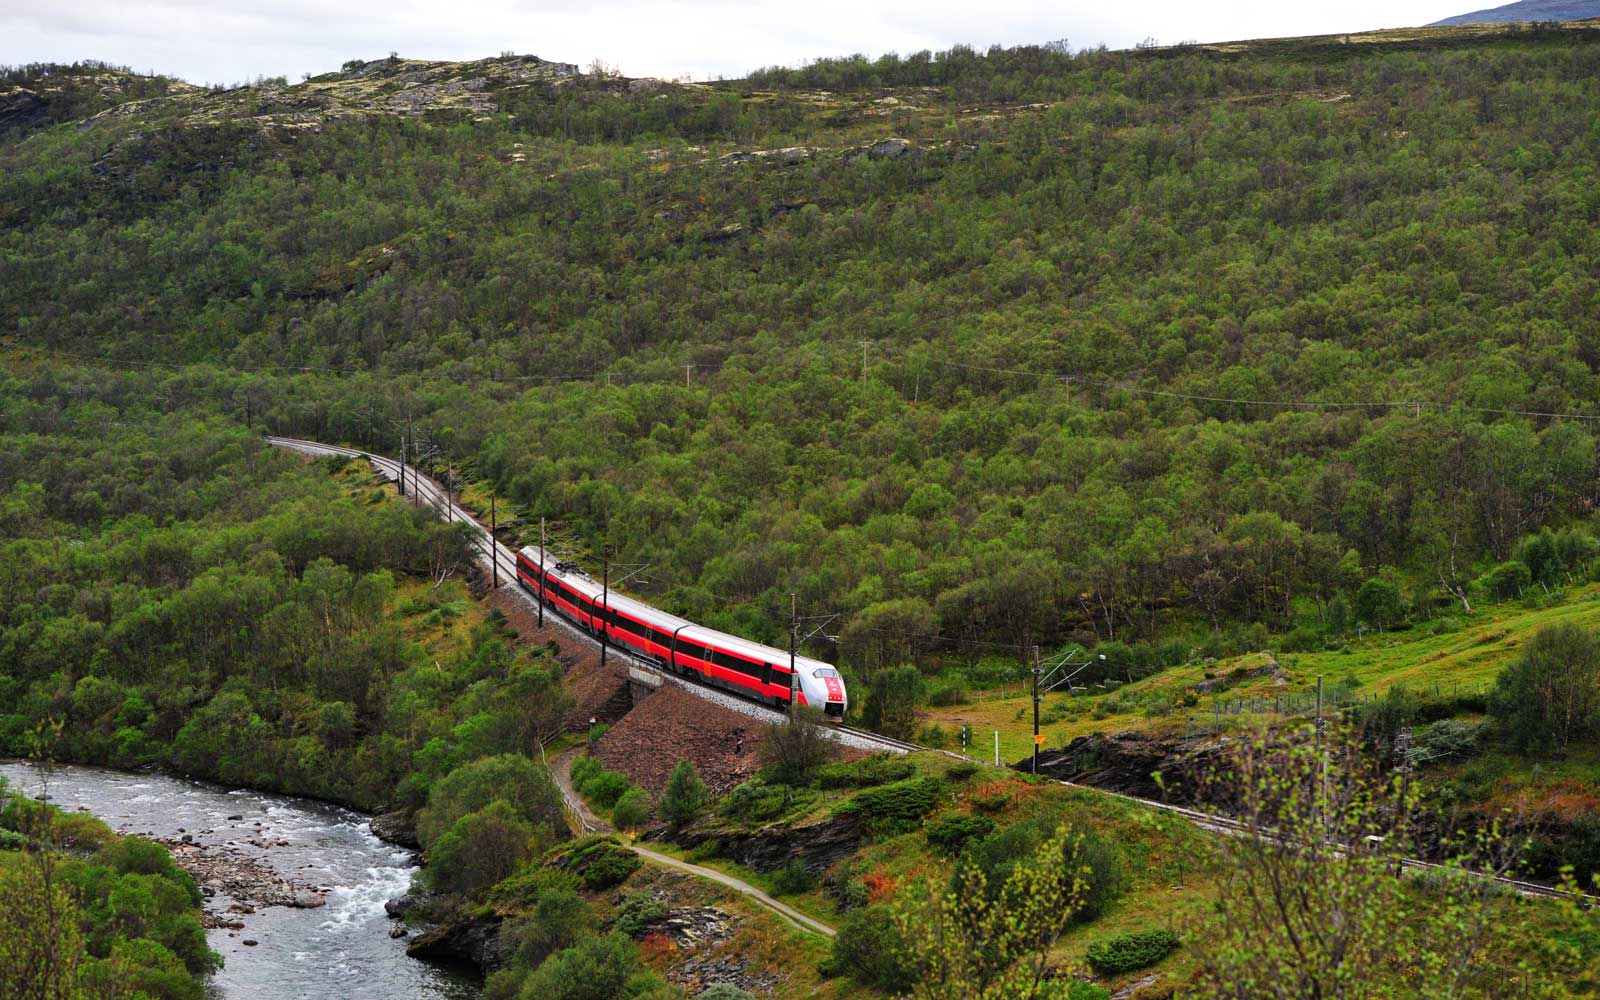 This Rural Train Offers the Most Breathtaking Views of the Norwegian Alps